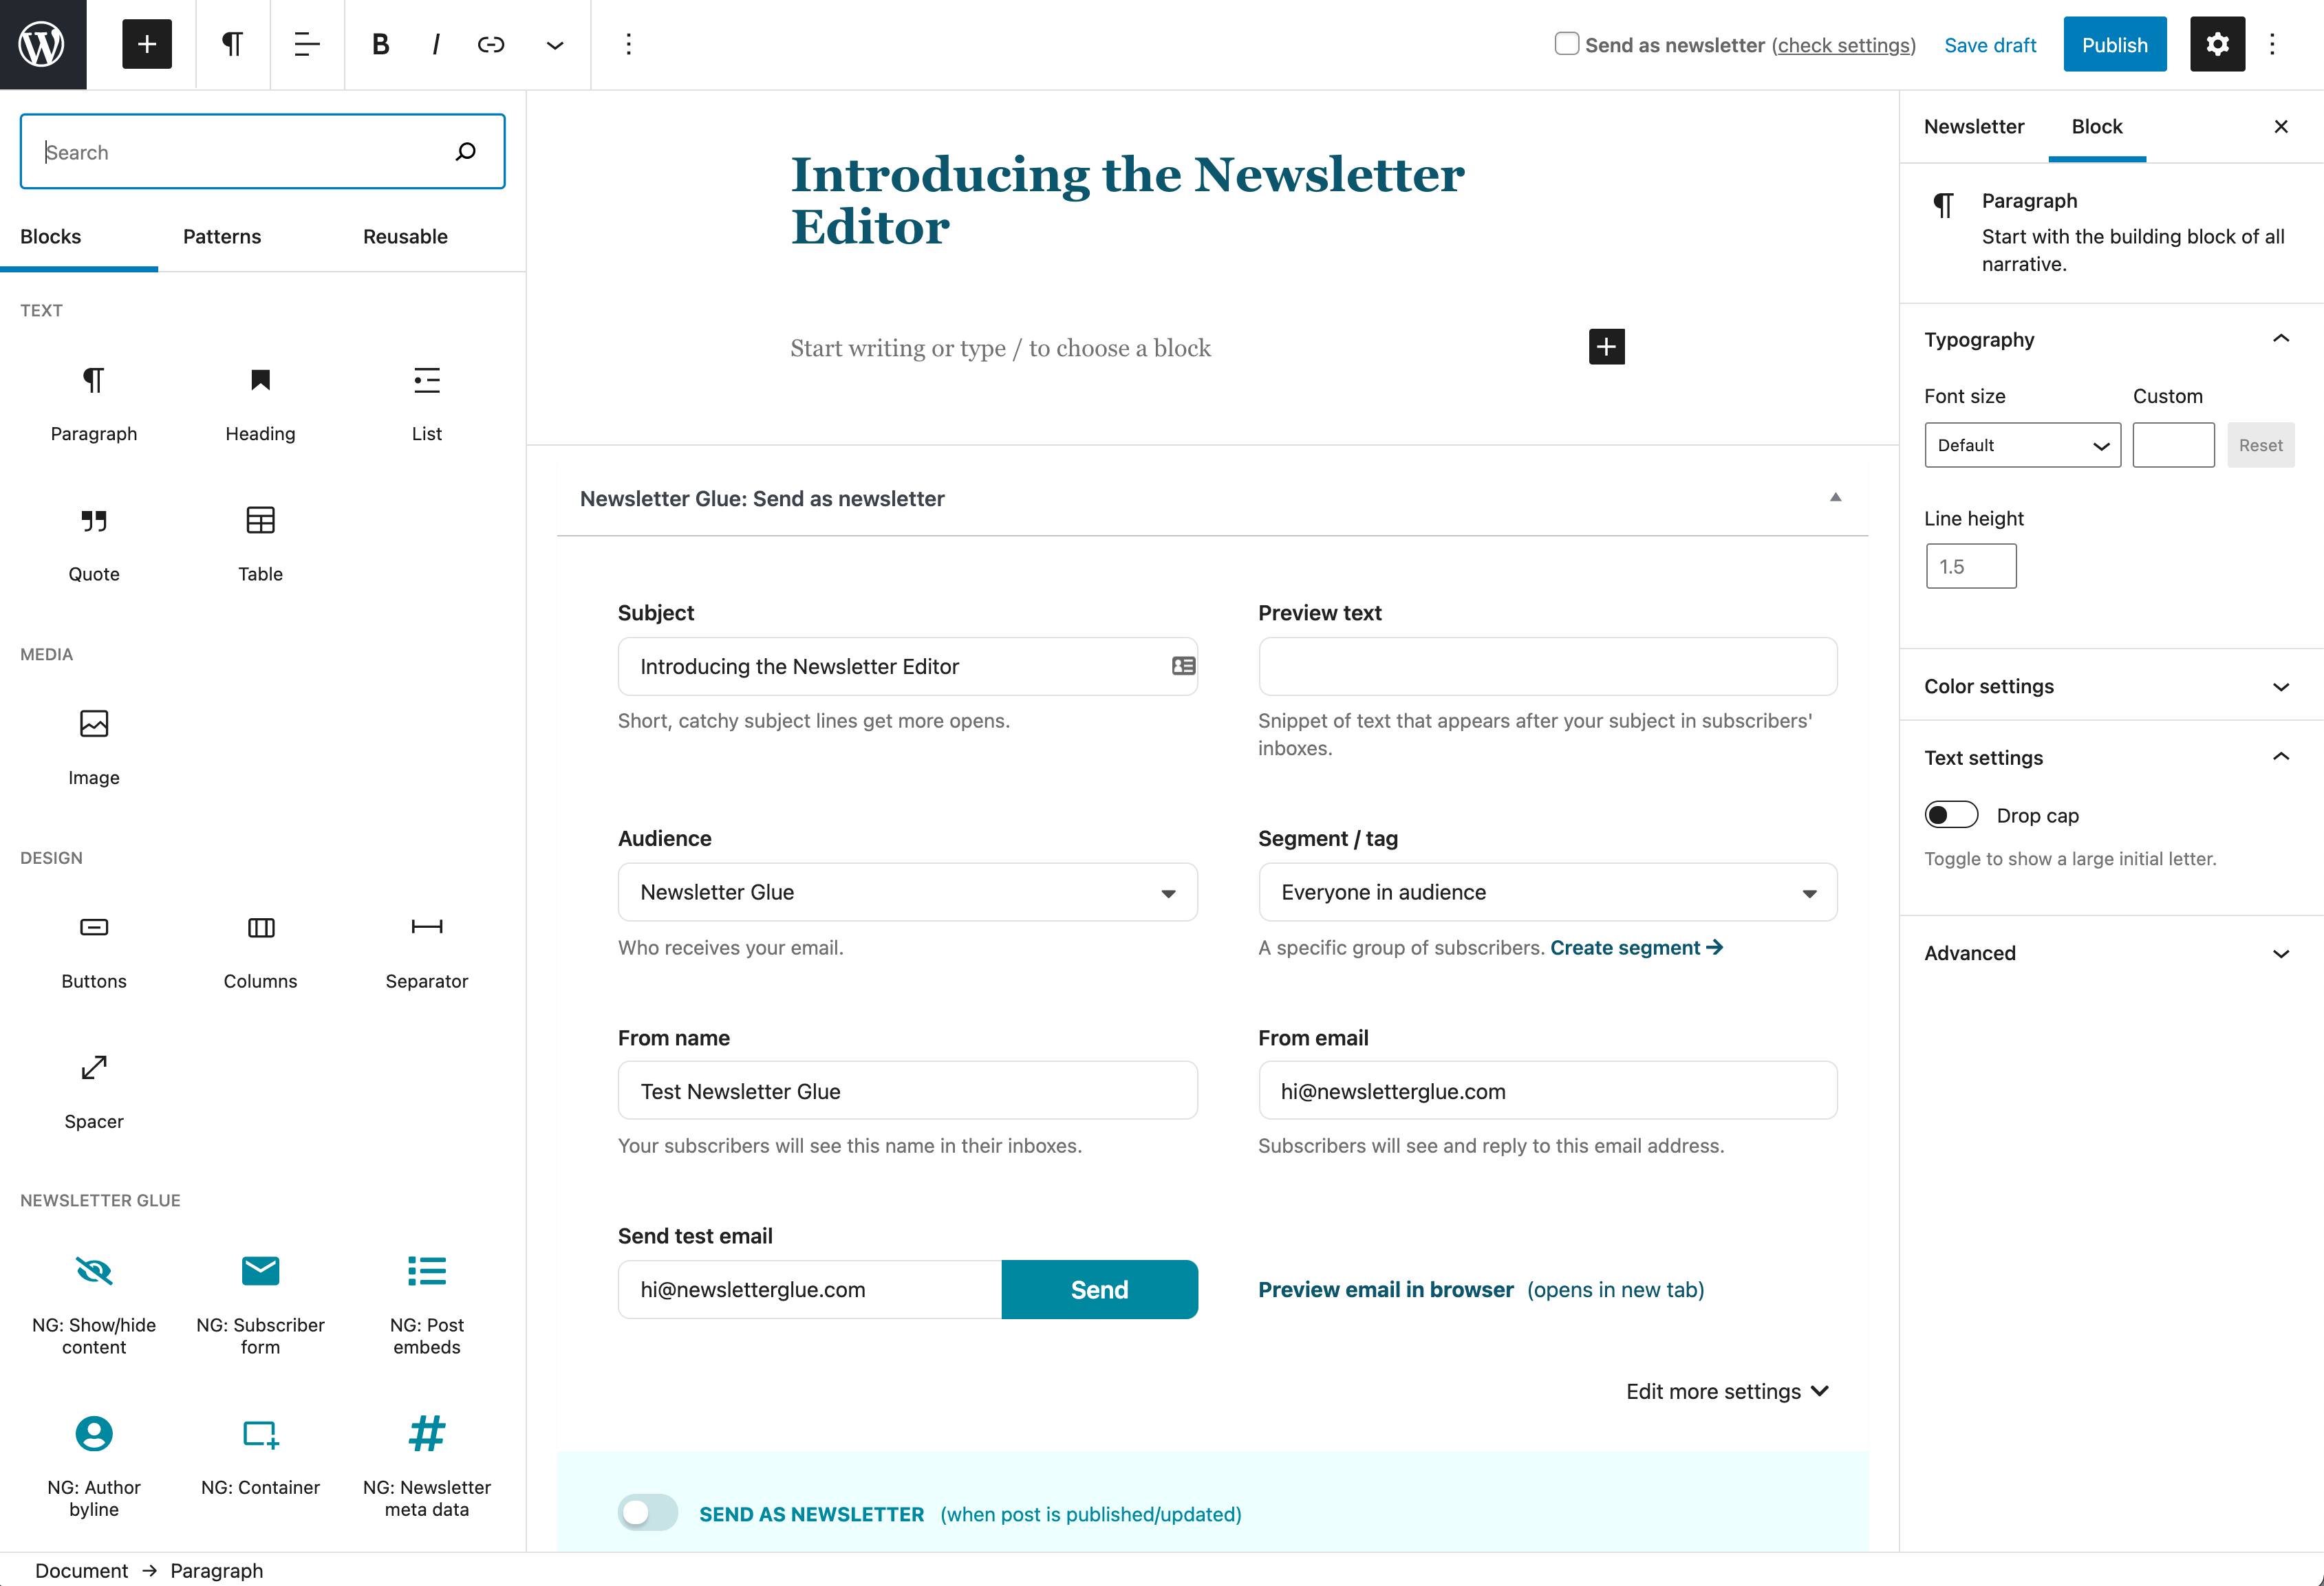 Introducing the Newsletter Editor